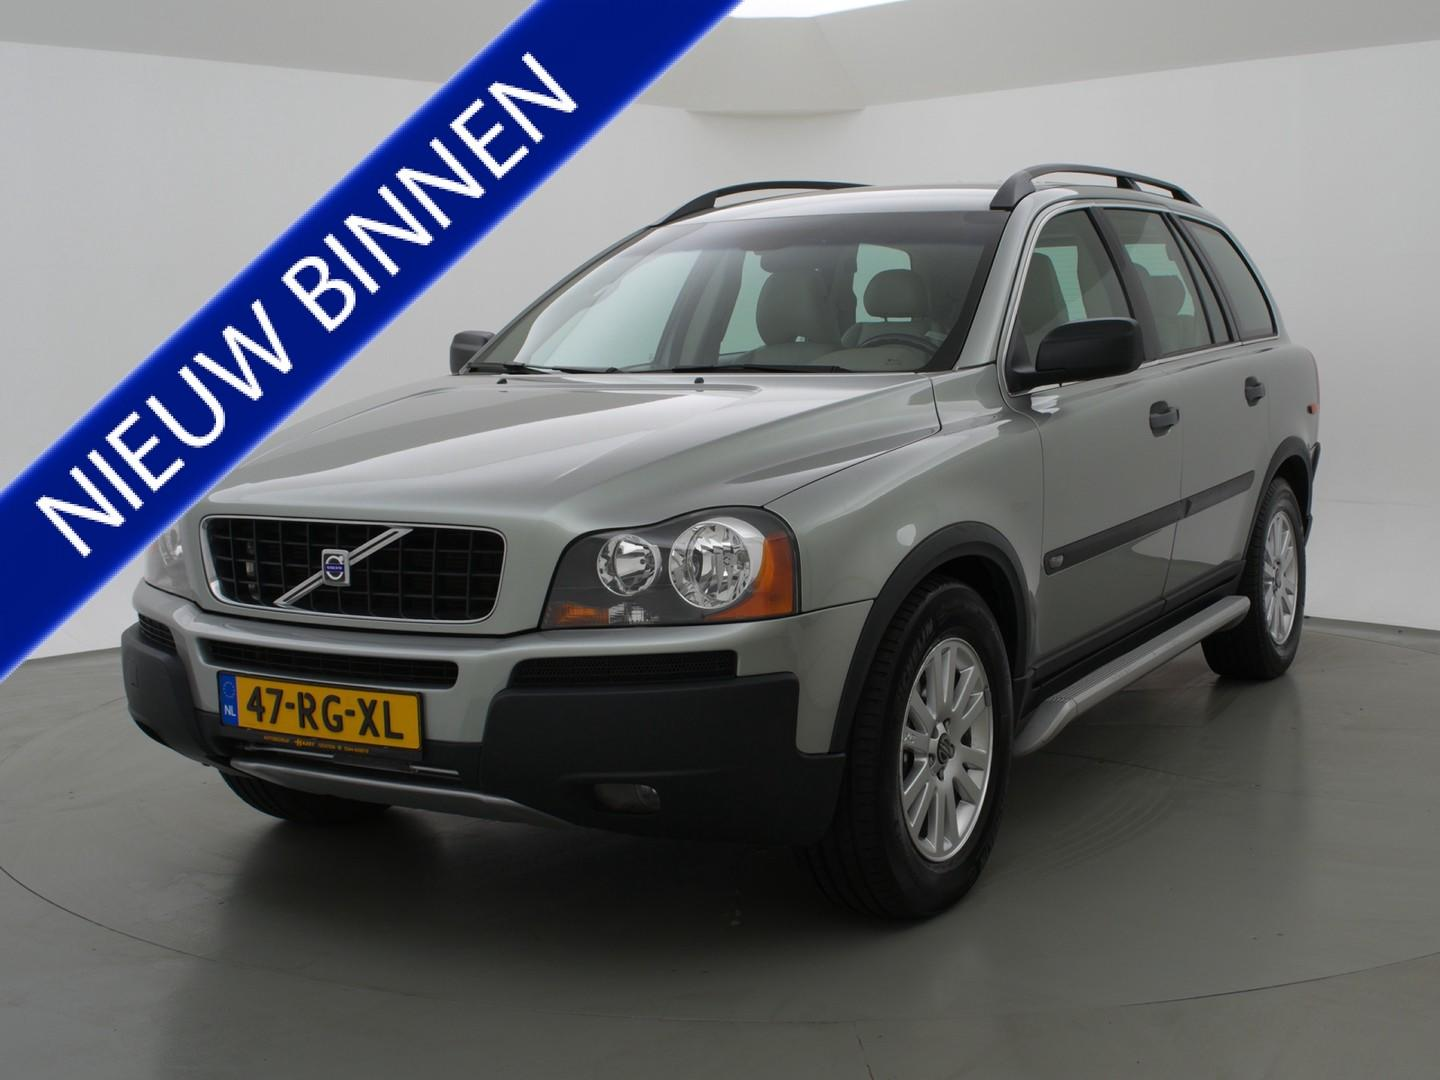 Volvo Xc90 2.5t 210 pk awd aut. 7-pers. summum youngtimer - orig. nl